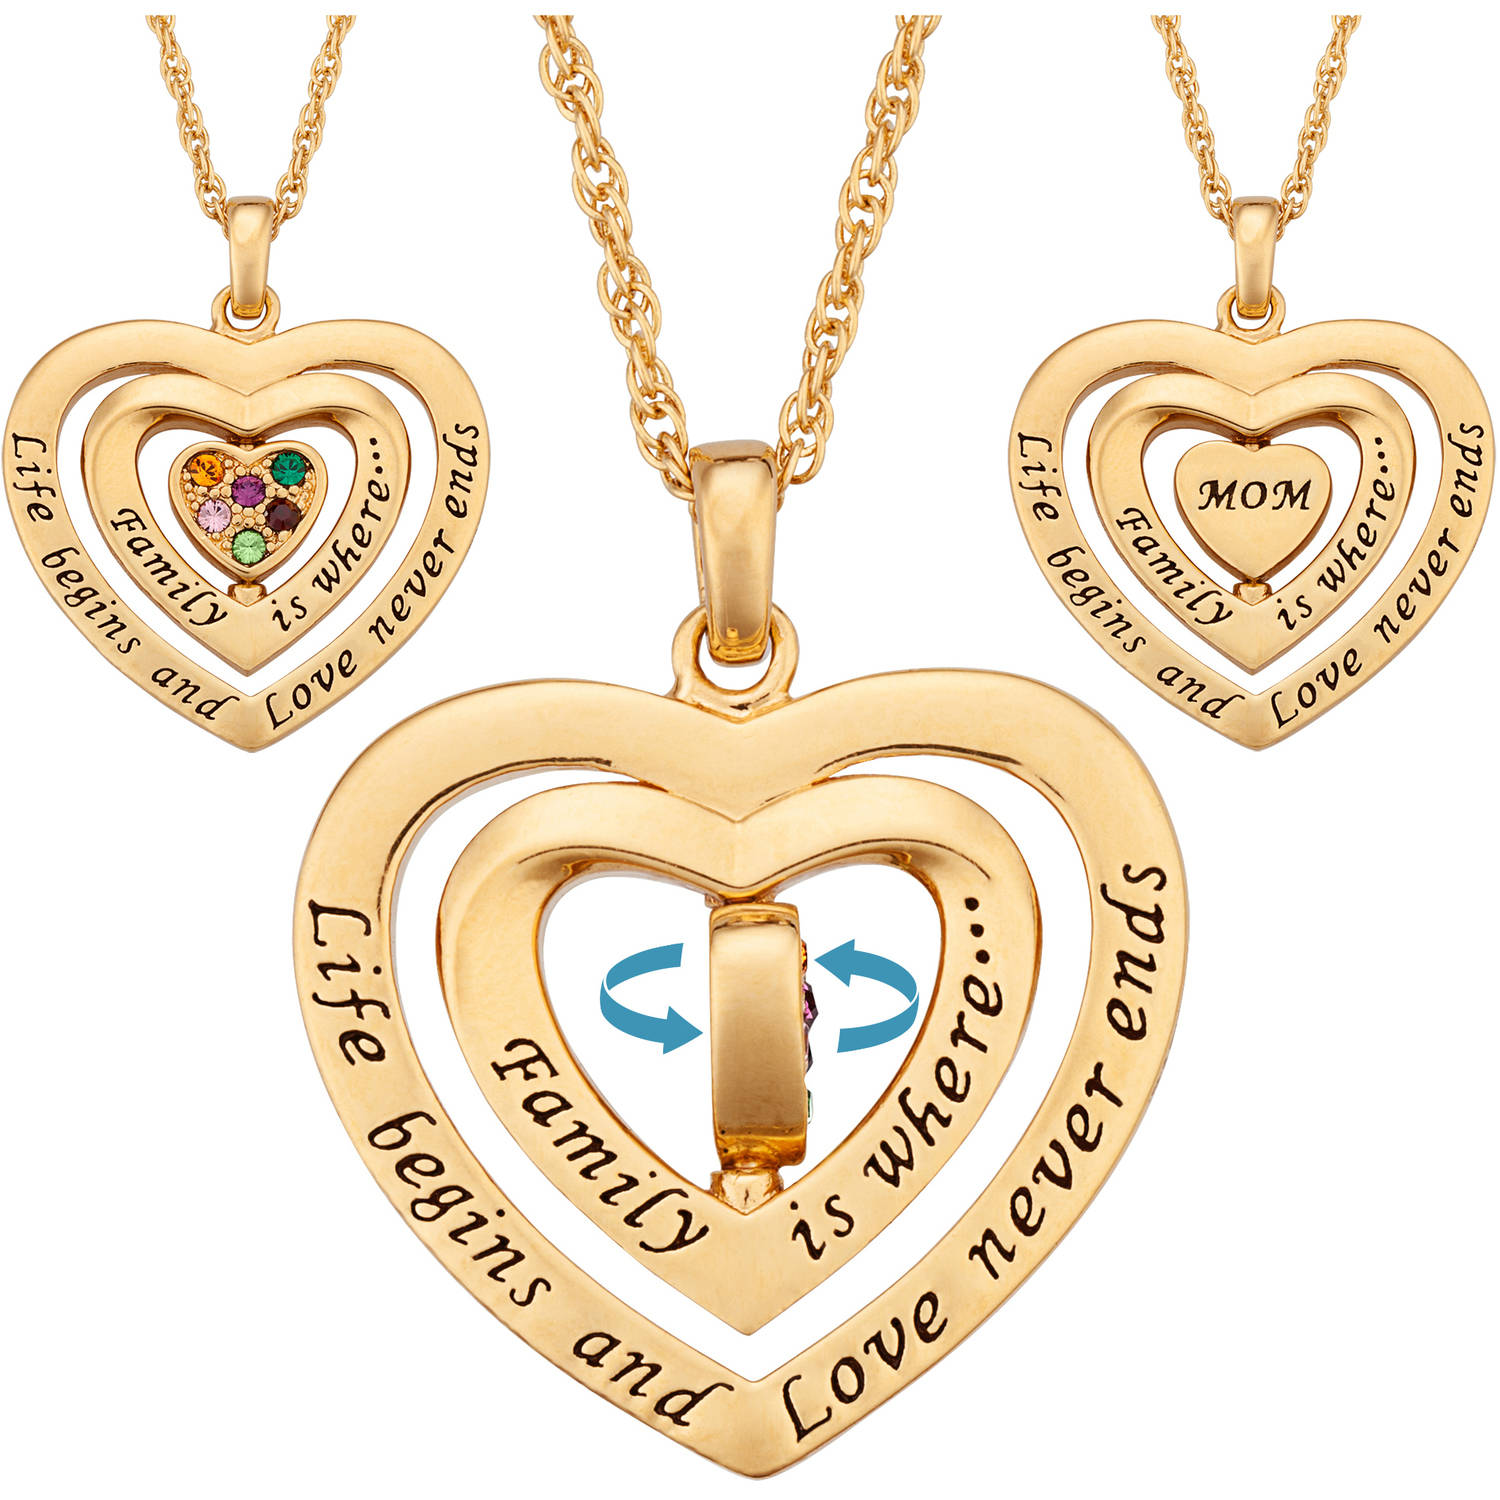 Personalized Mom Birthstone Swivel Heart Gold-Tone Pendant